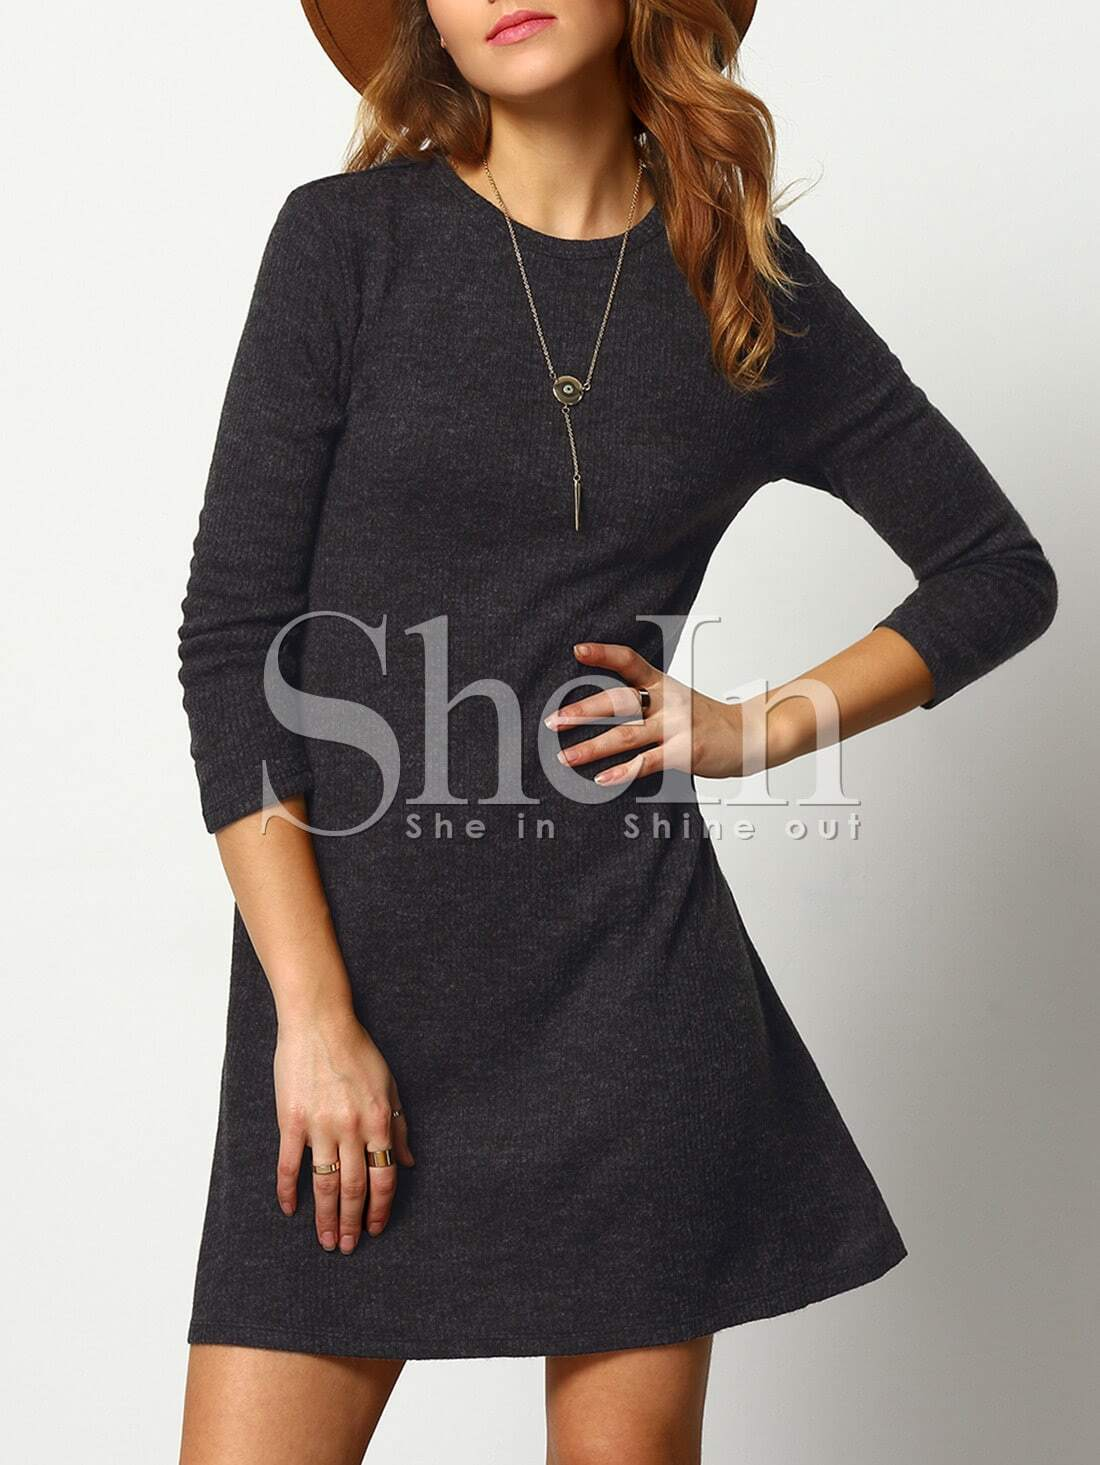 Crew Neck Casual Sweater Dress crew neck tribal fitted sweater dress